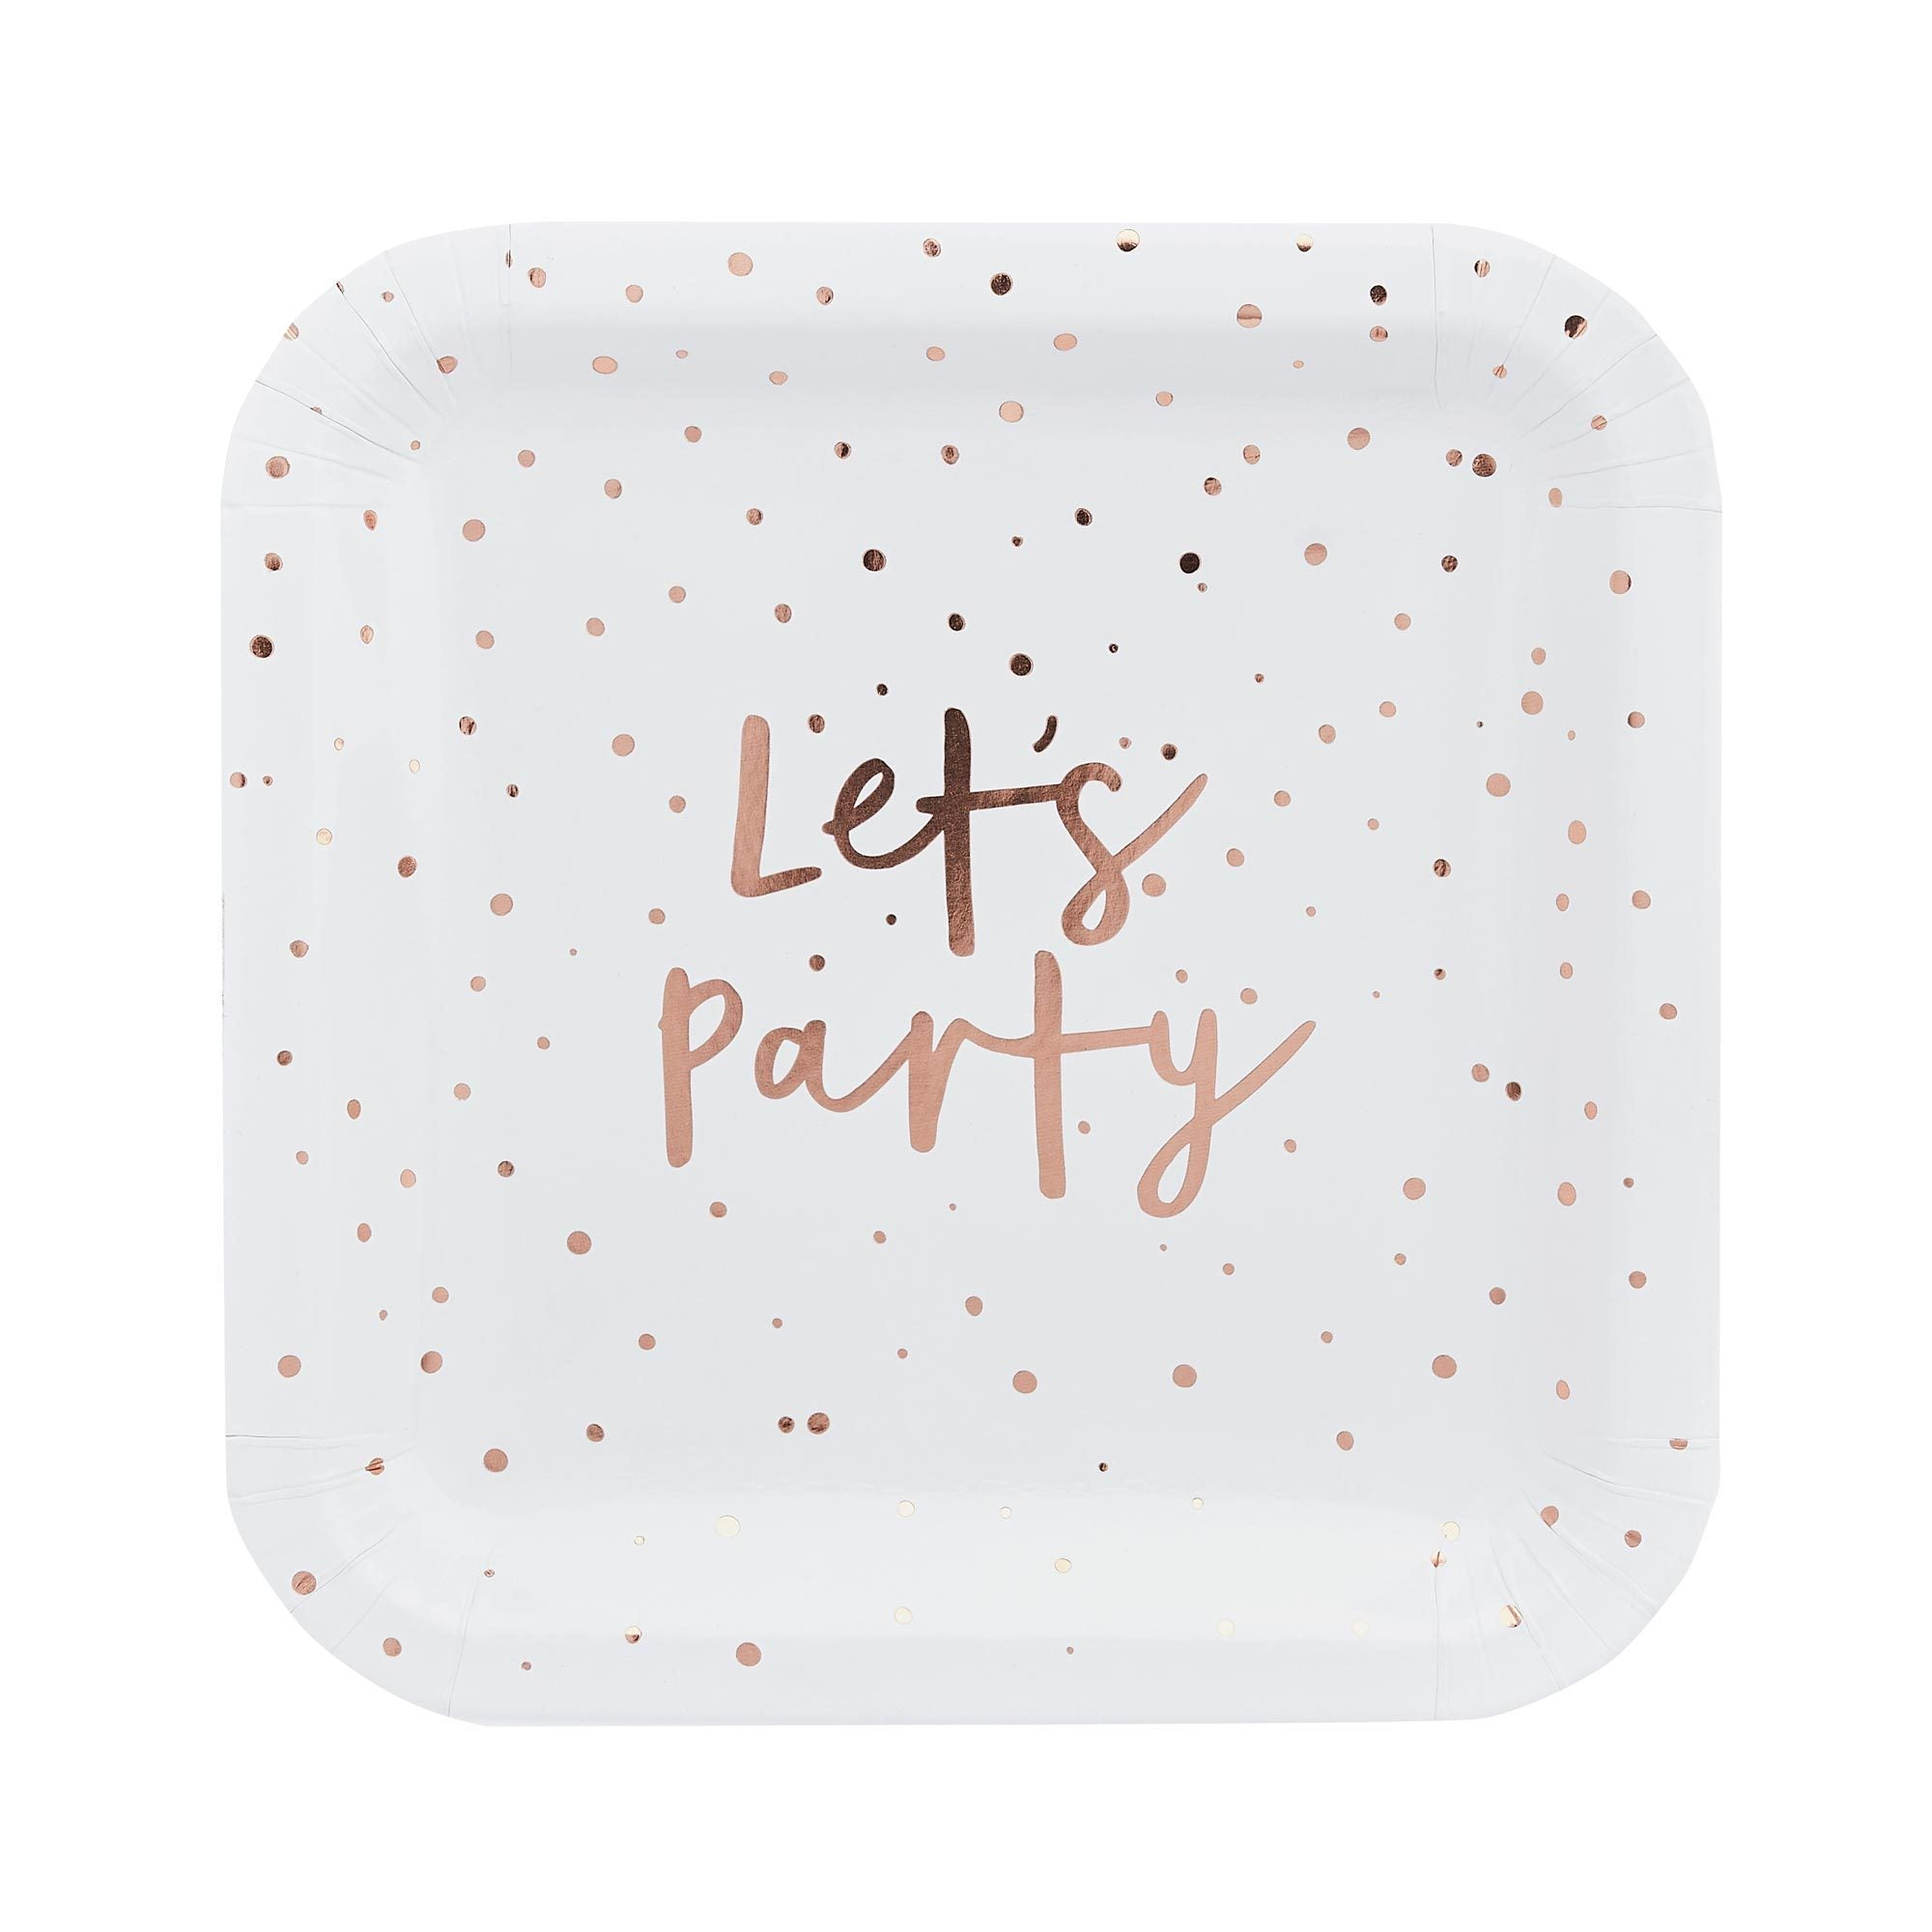 10 Rose Gold Let's Party Paper Plates